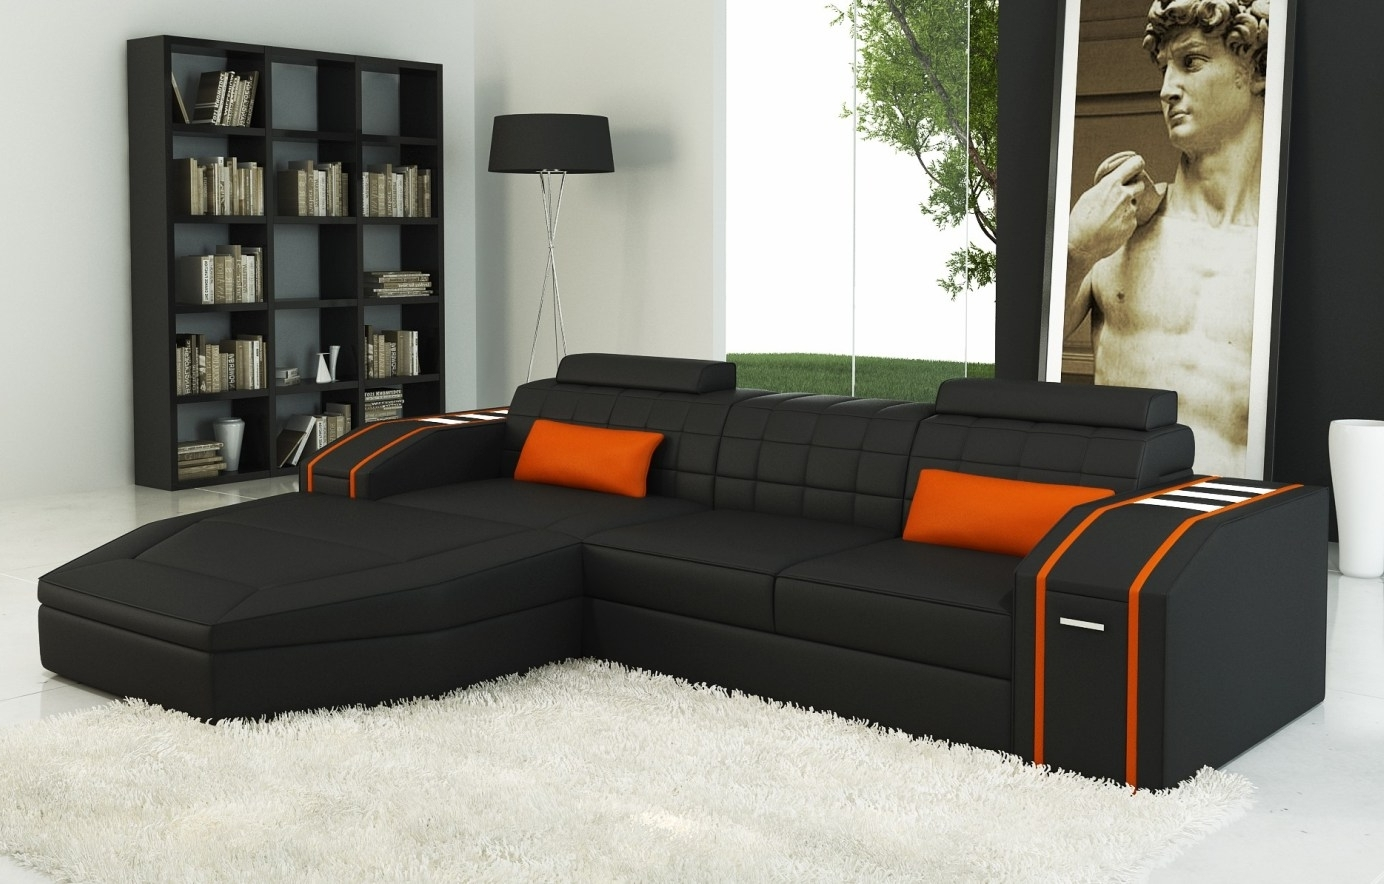 Valdosta Ga Sectional Sofas In Trendy Furniture : Cool Sofas For Sale Excellent Design Ideas 19 Bedroom (View 10 of 20)